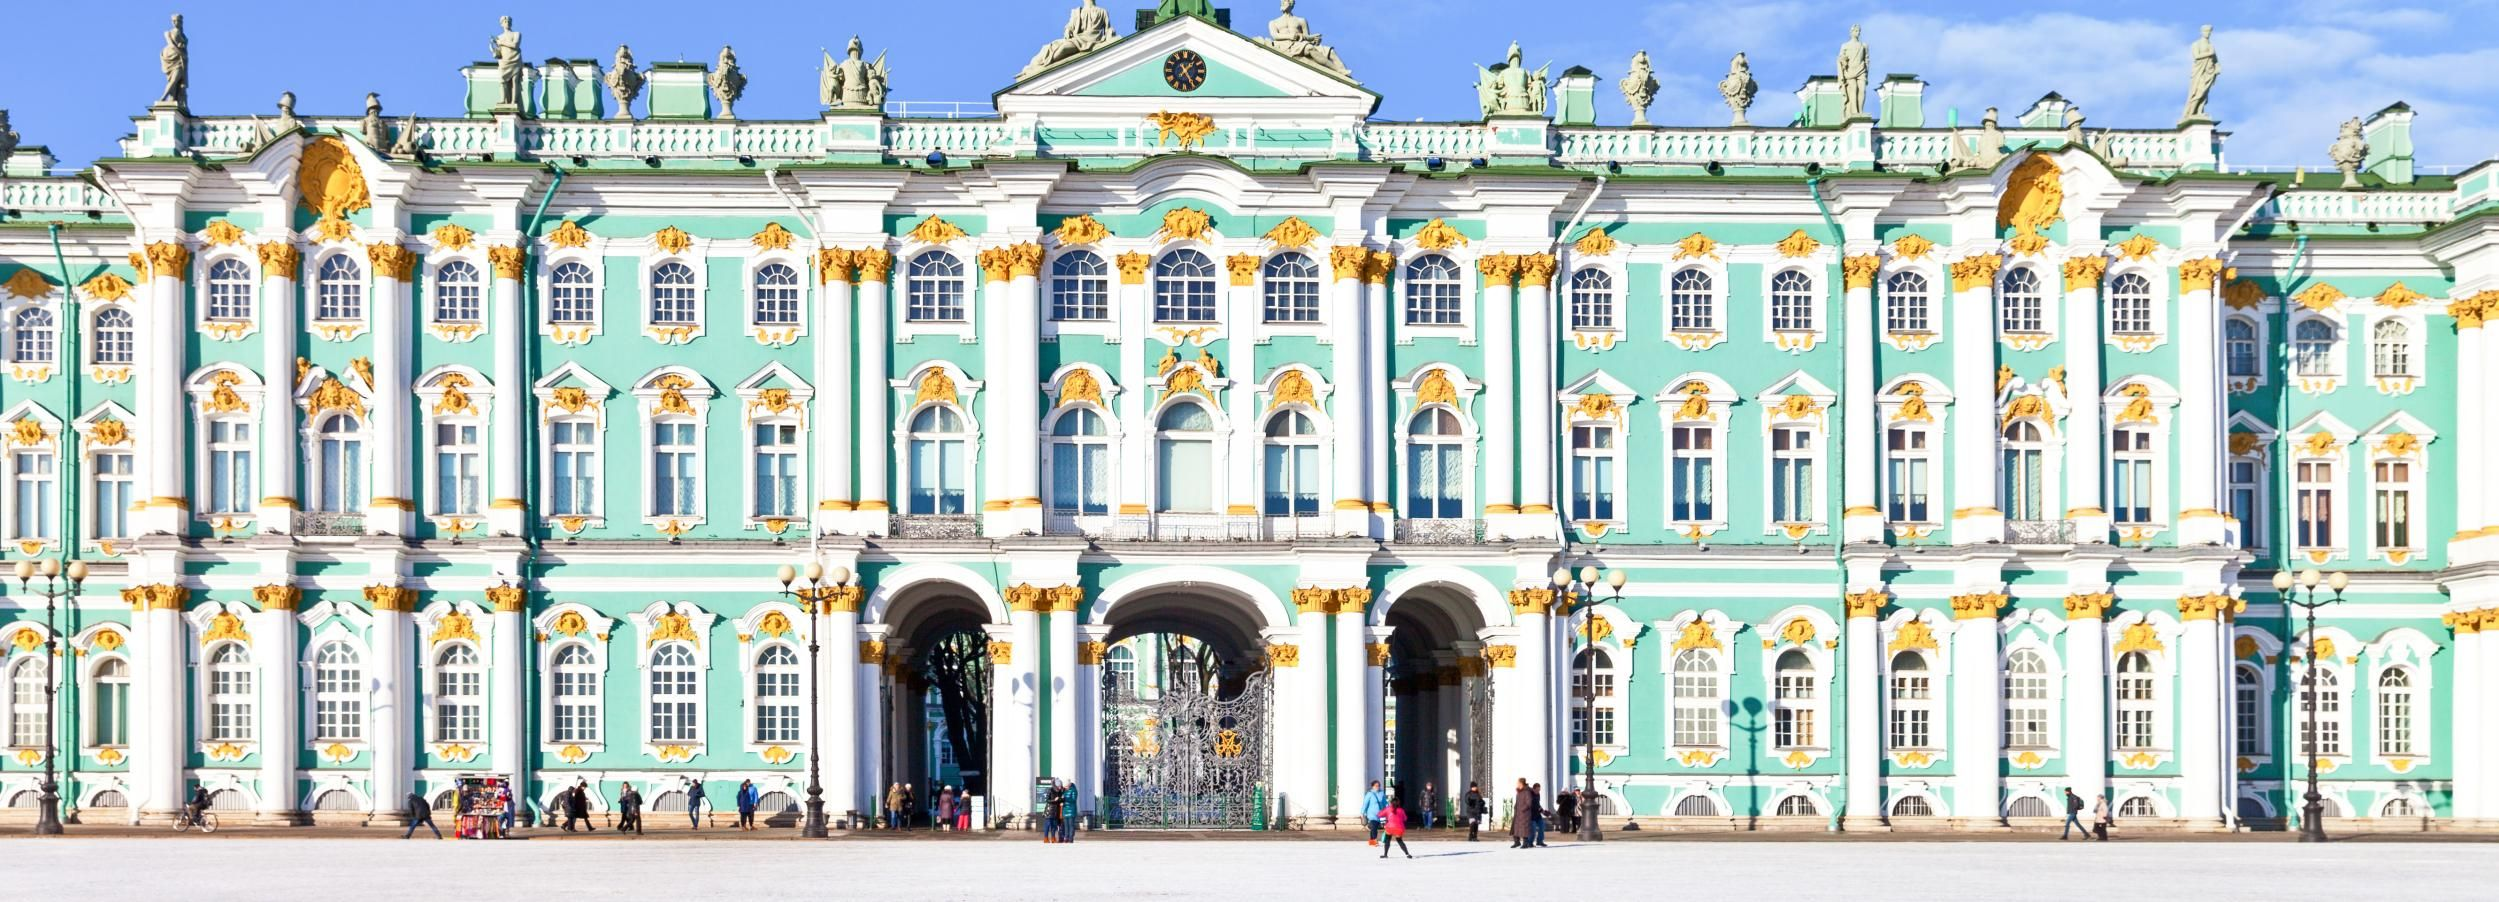 Full-Day Tour of St. Petersburg